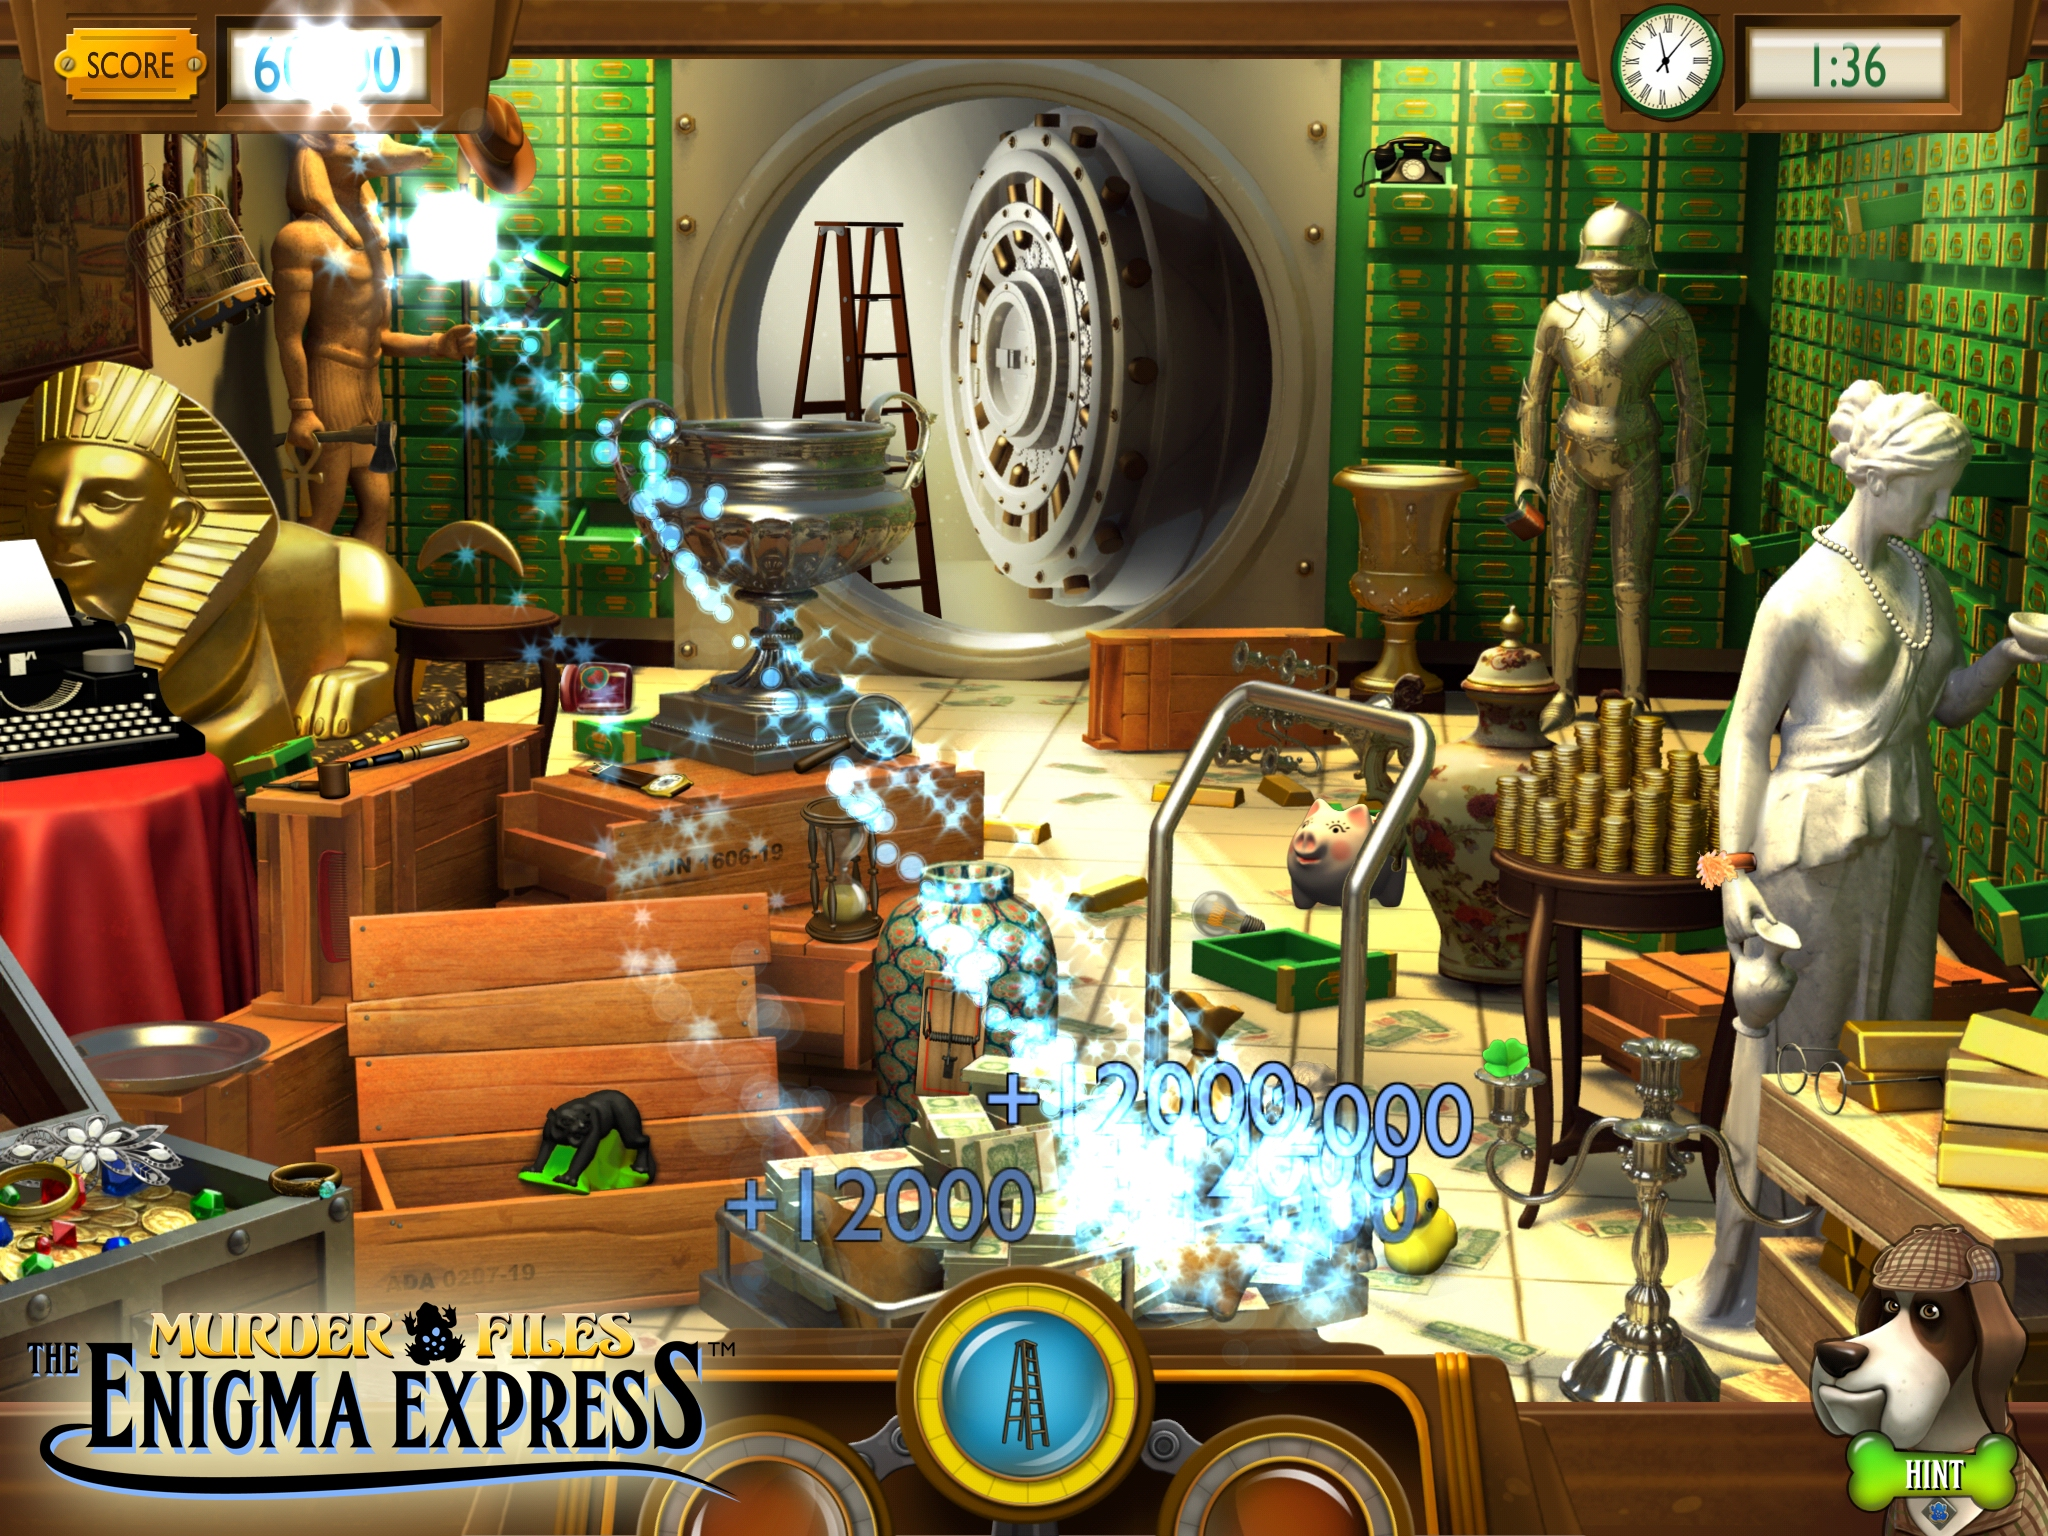 [Update] Out now: Murder Files: Enigma Express is a hidden object detective game for iPhone and iPad